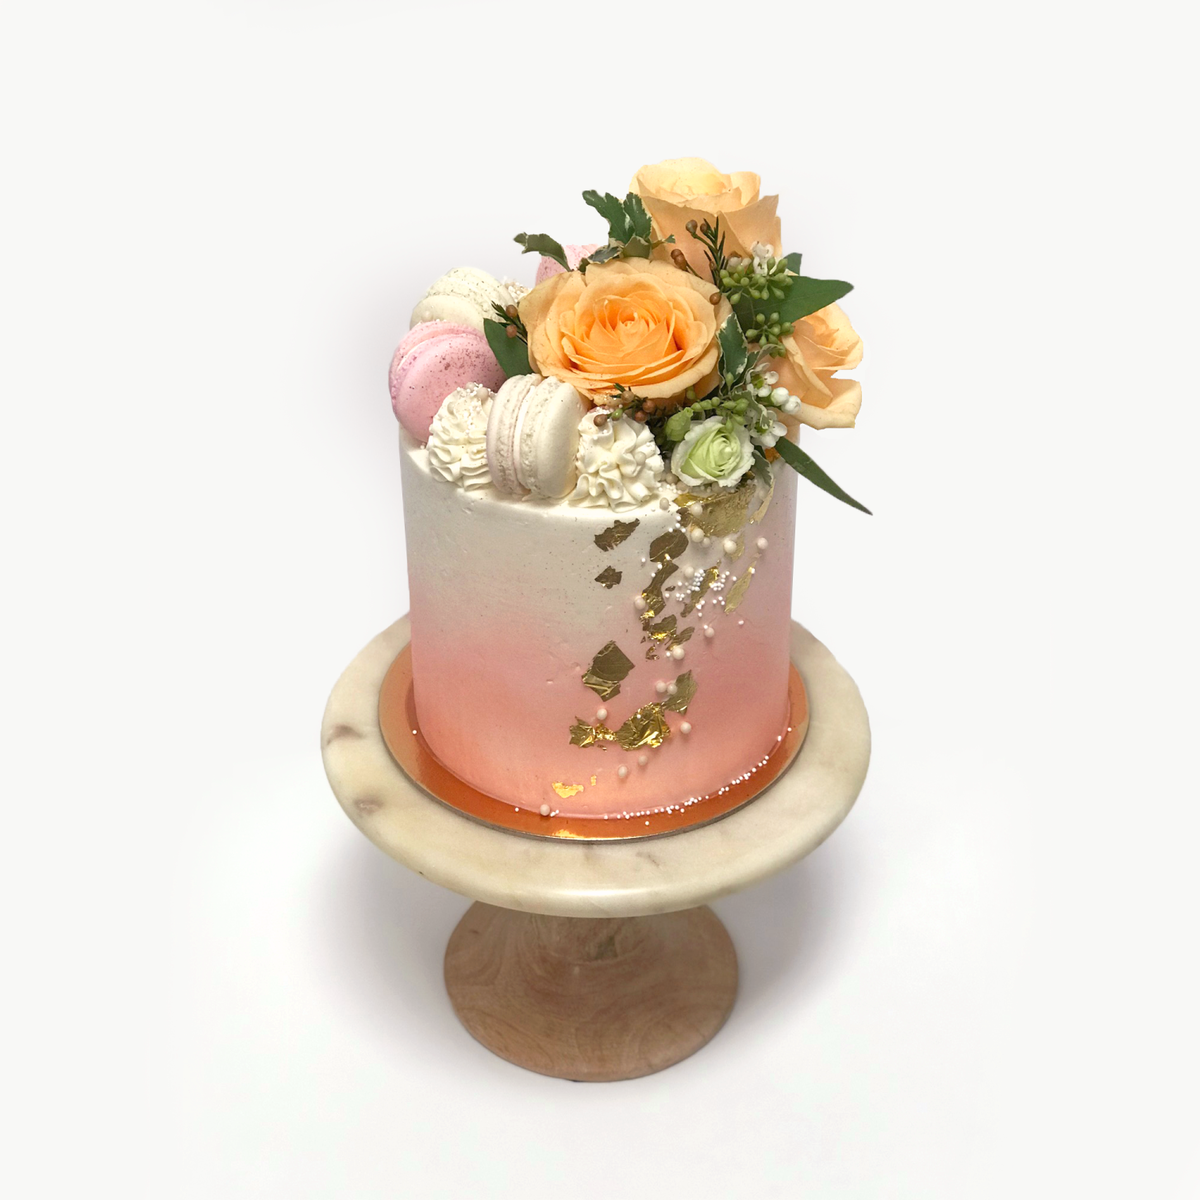 Whippt Desserts - Auction Cake Feb 12